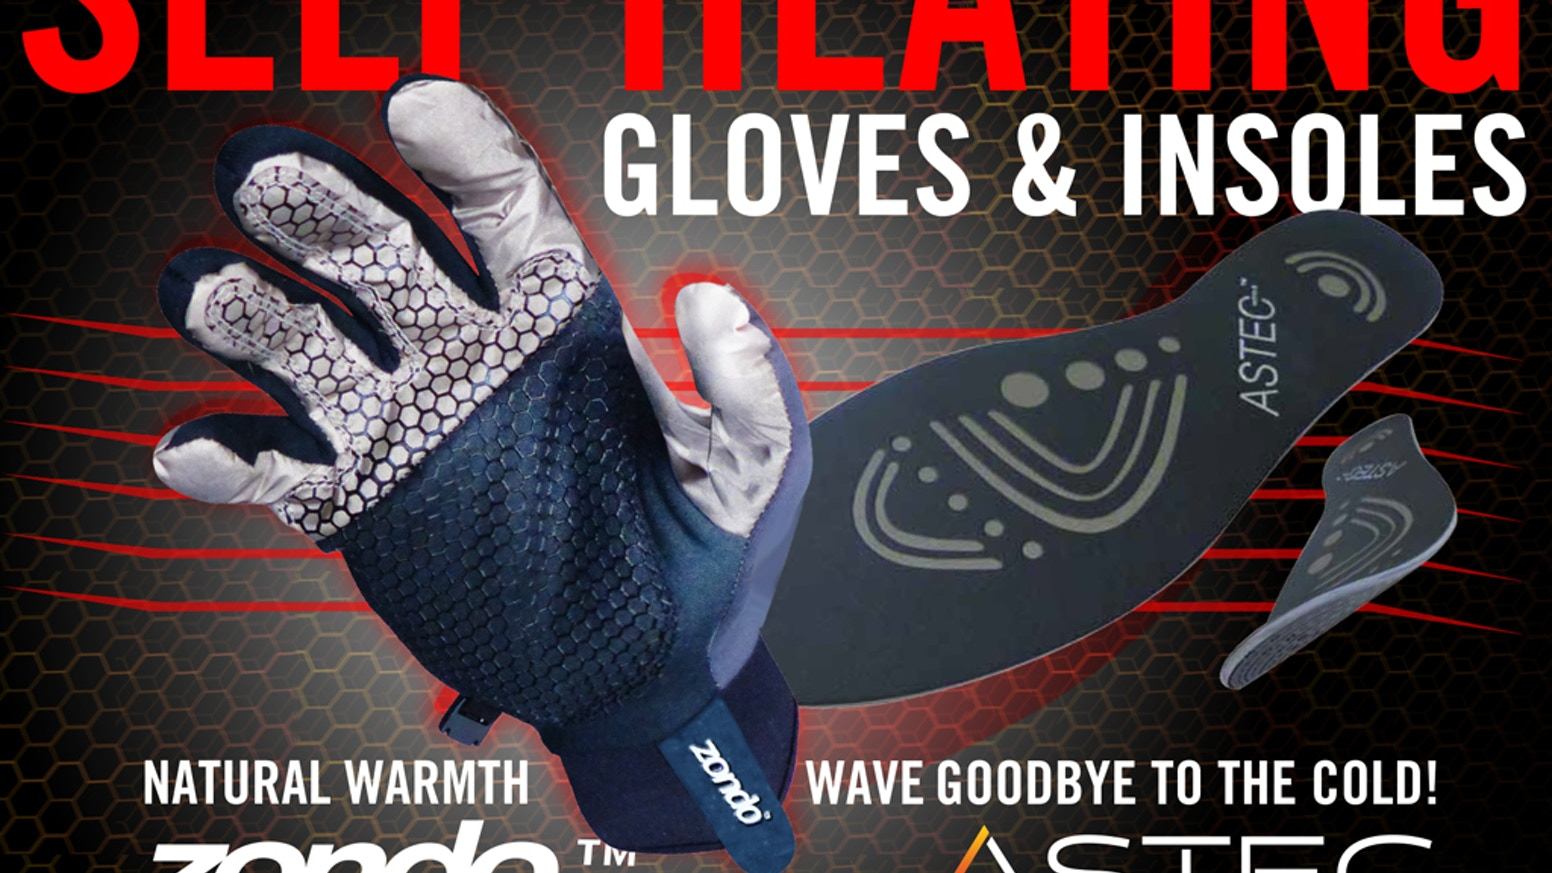 Natural warmth, say goodbye to cold hands and feet. Self heating gloves and insoles from Astec and Zondo.